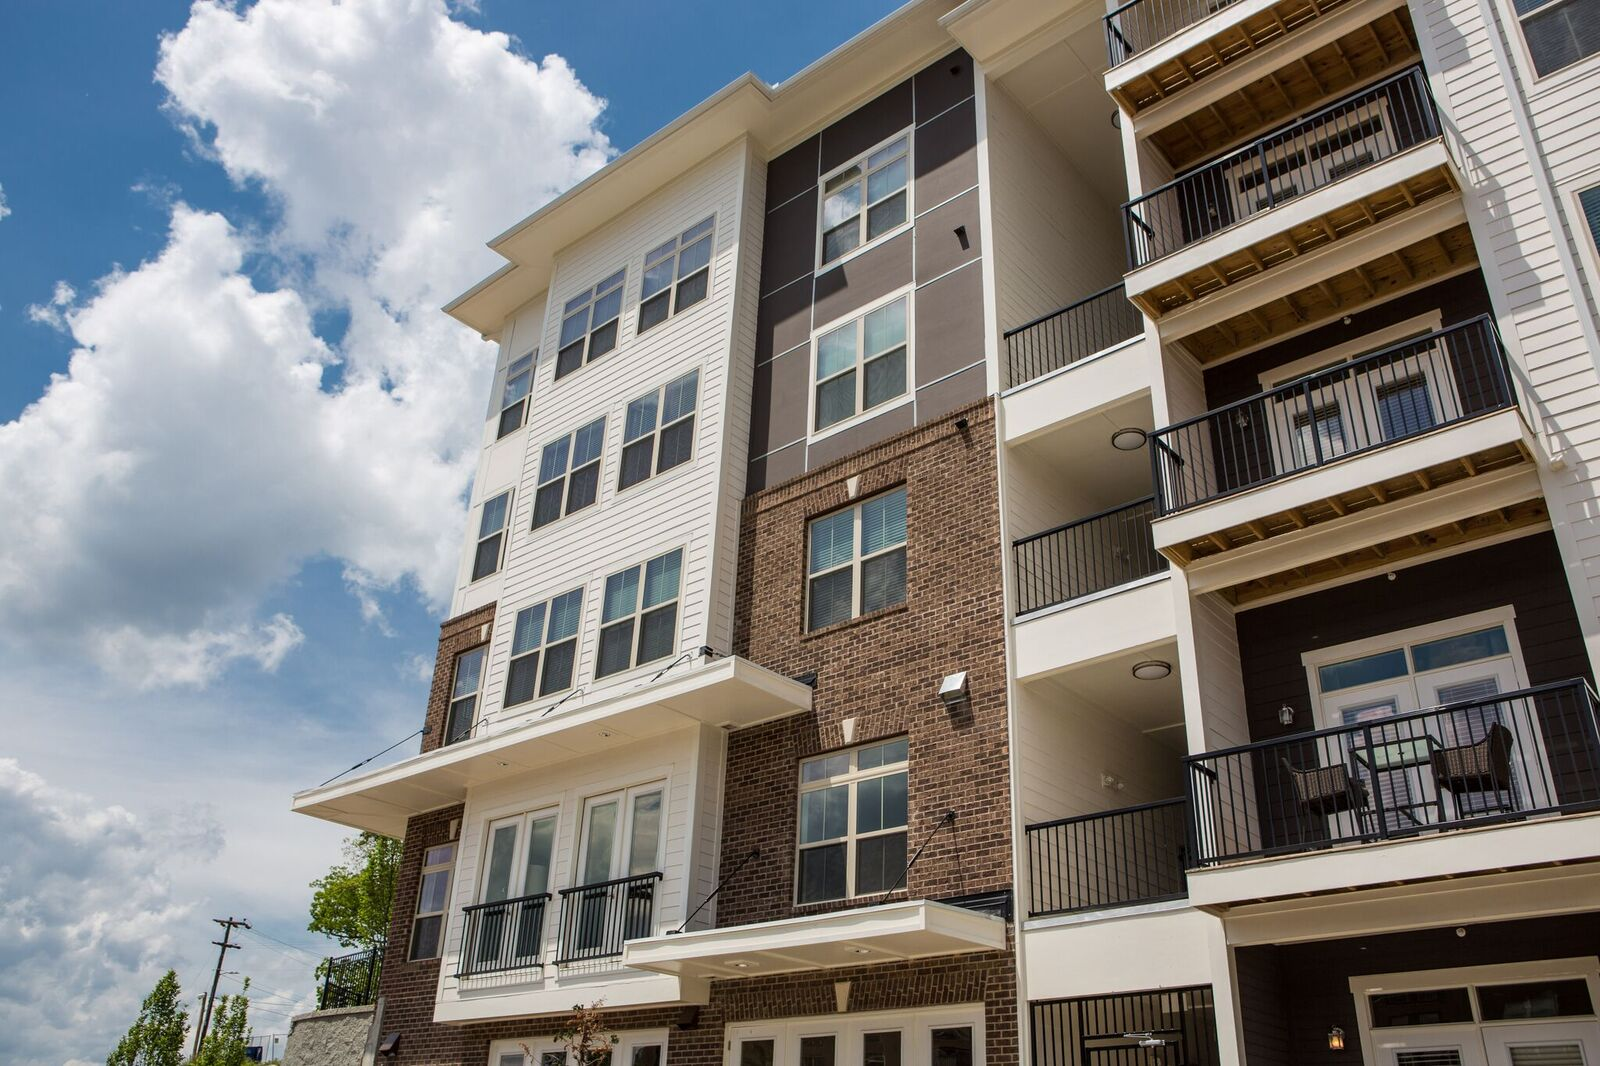 Asset Class : Multifamily   Location : Atlanta, GA   Investment  Date : June 2014   Status : Substantially Realized in October 2017    Size : 165-units   Description : Palatine made a preferred equity investment to partially capitalize the development of a multifamily property. Palatine partnered with a developer that was seeking the flexibility to potentially own the asset long-term. Palatine designed a preferred structure that provided Palatine with seniority rights in exchange for equitizing a portion of the investment at a fixed rate of return. The developer successfully completed, stabilized, and refinanced the project using a portion of the refinance proceeds to repay Palatine's preferred position.